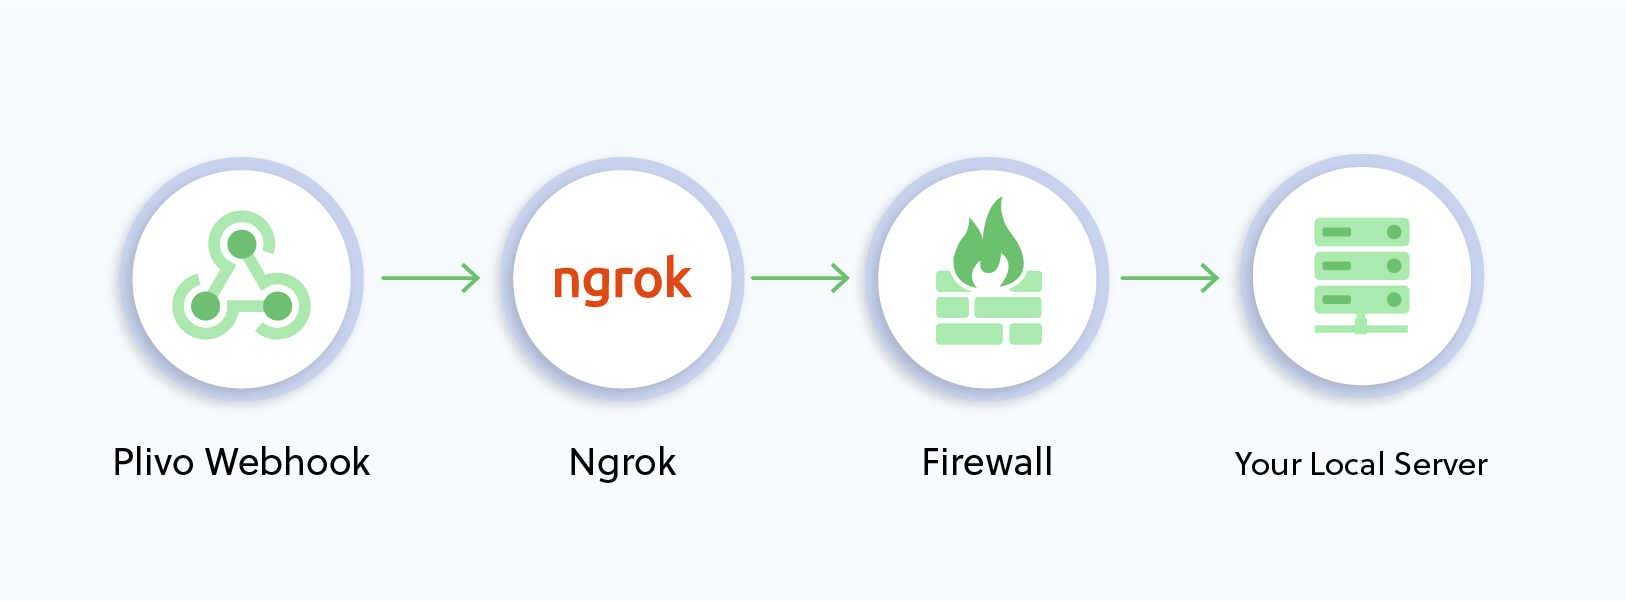 ngrok block diagram